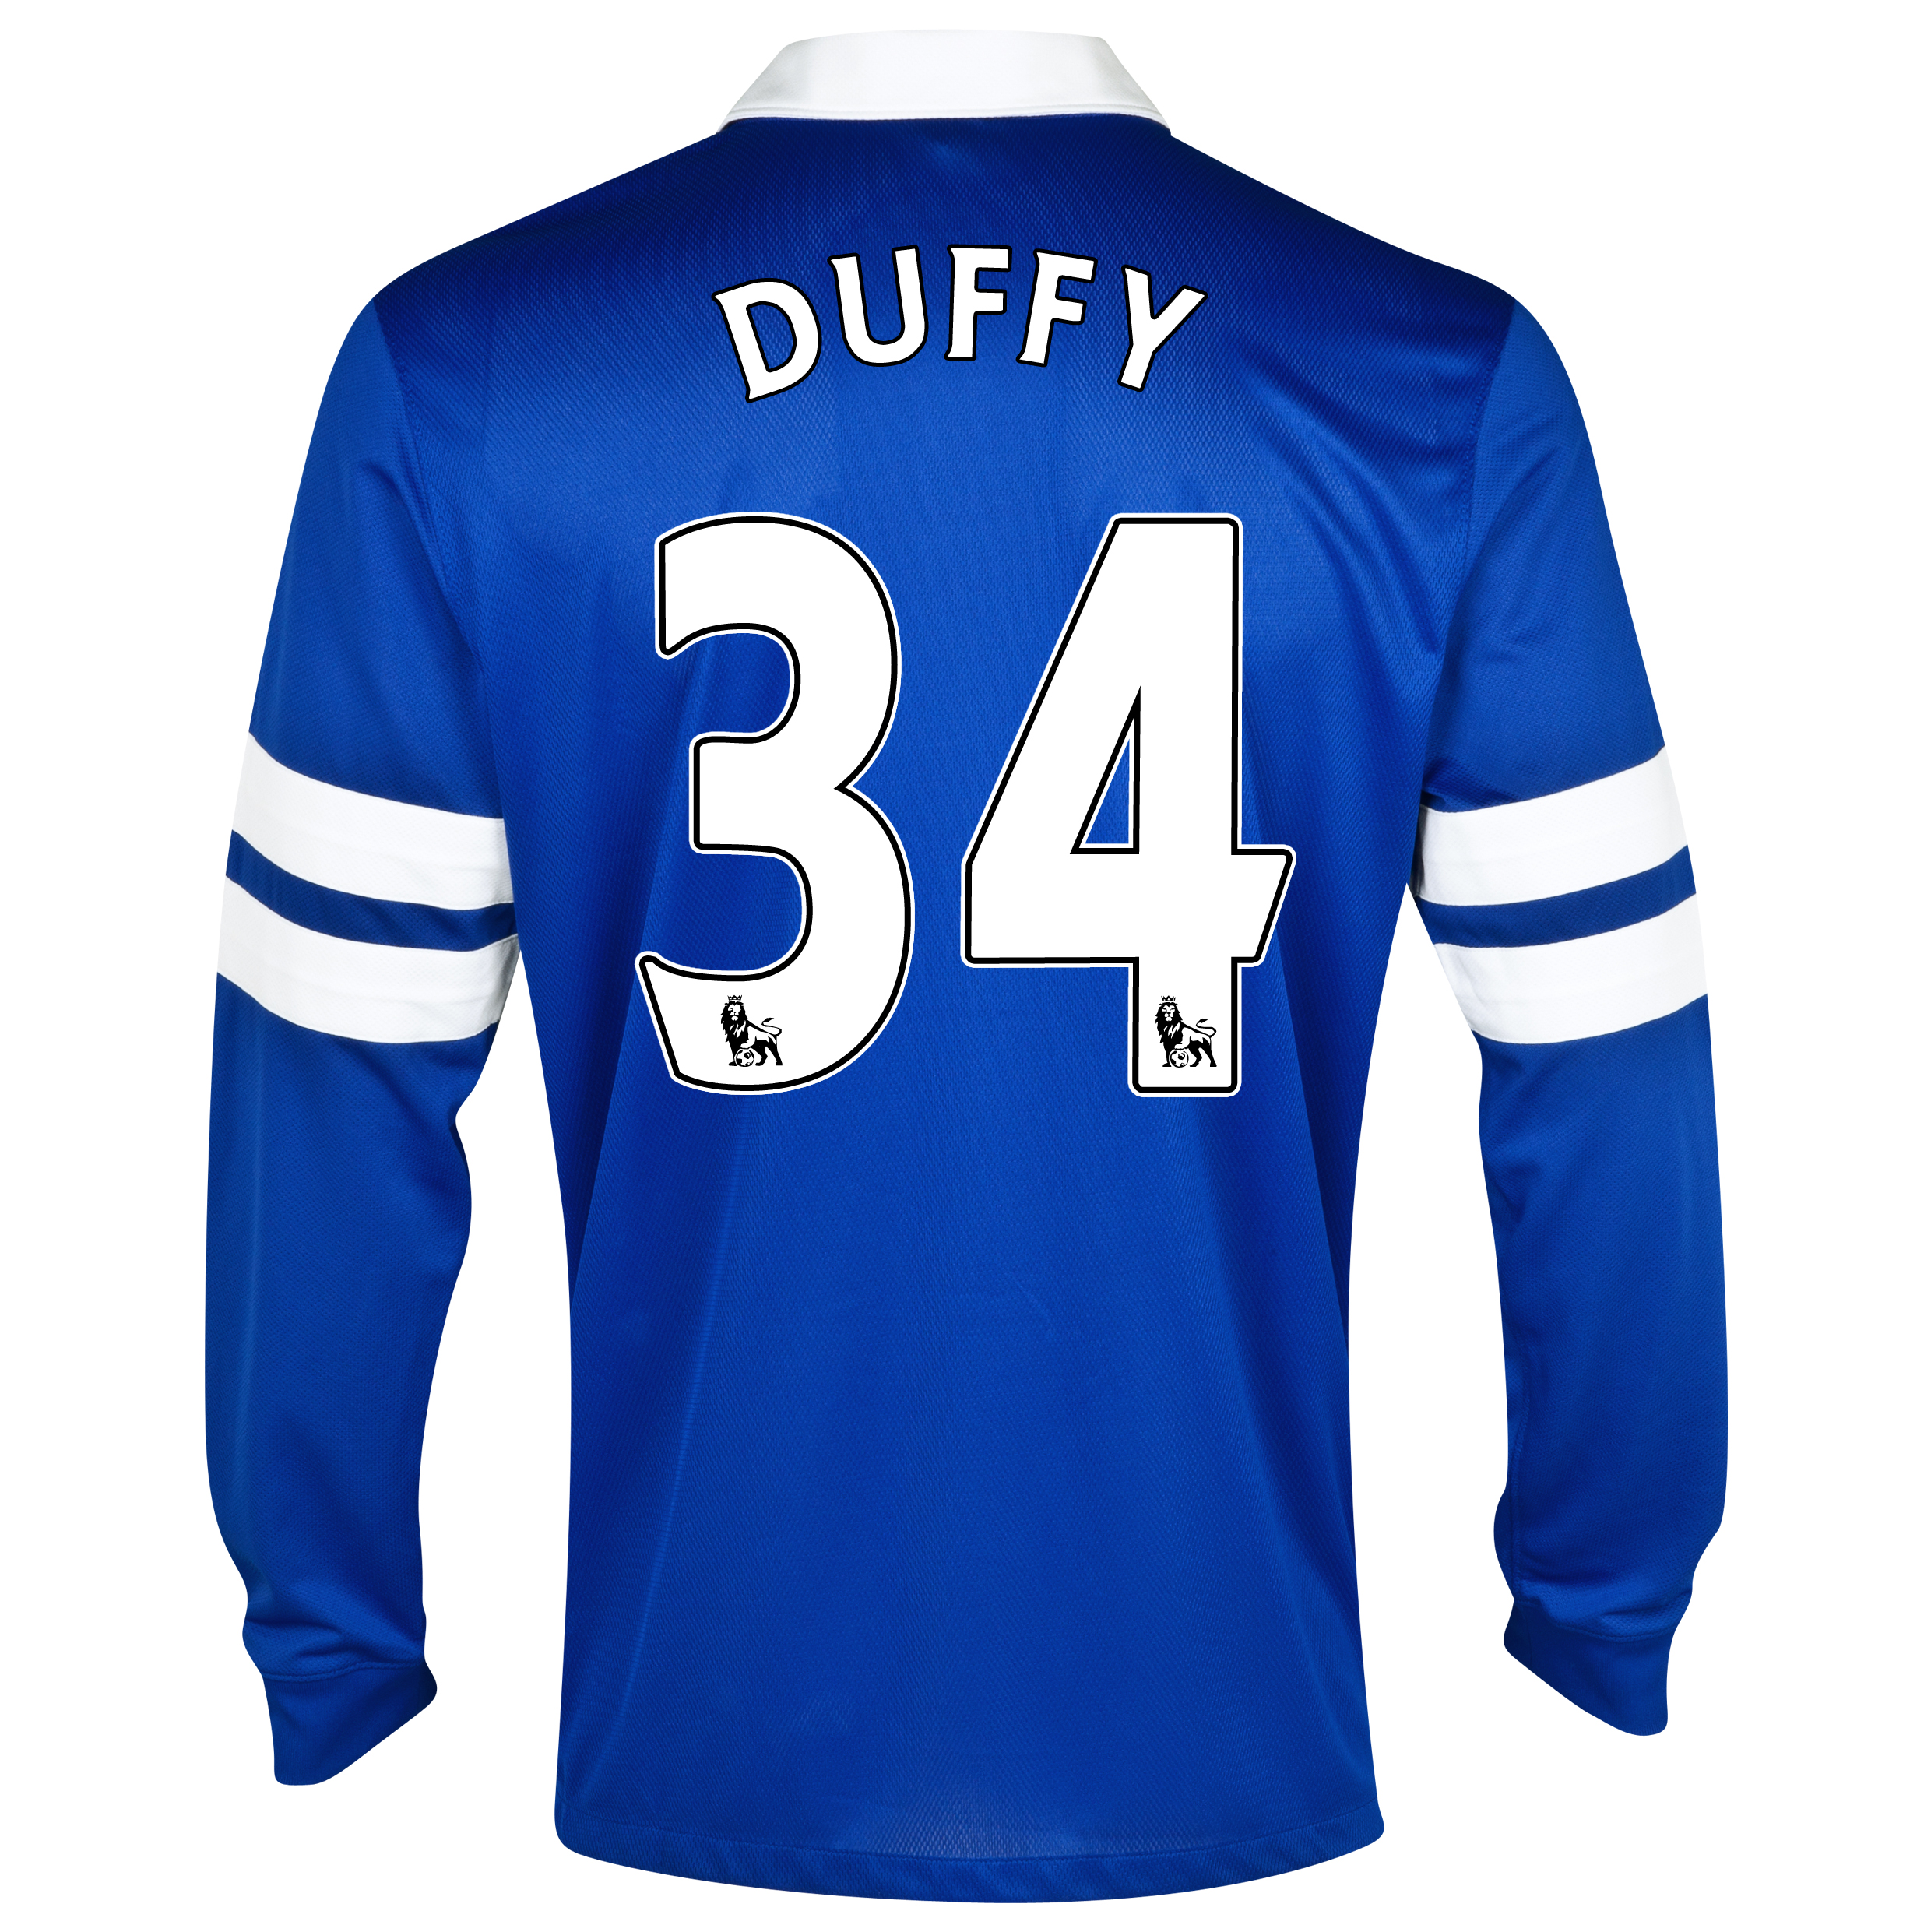 Everton Home Shirt 2013/14 - Junior - Long Sleeved Blue with Duffy 34 printing